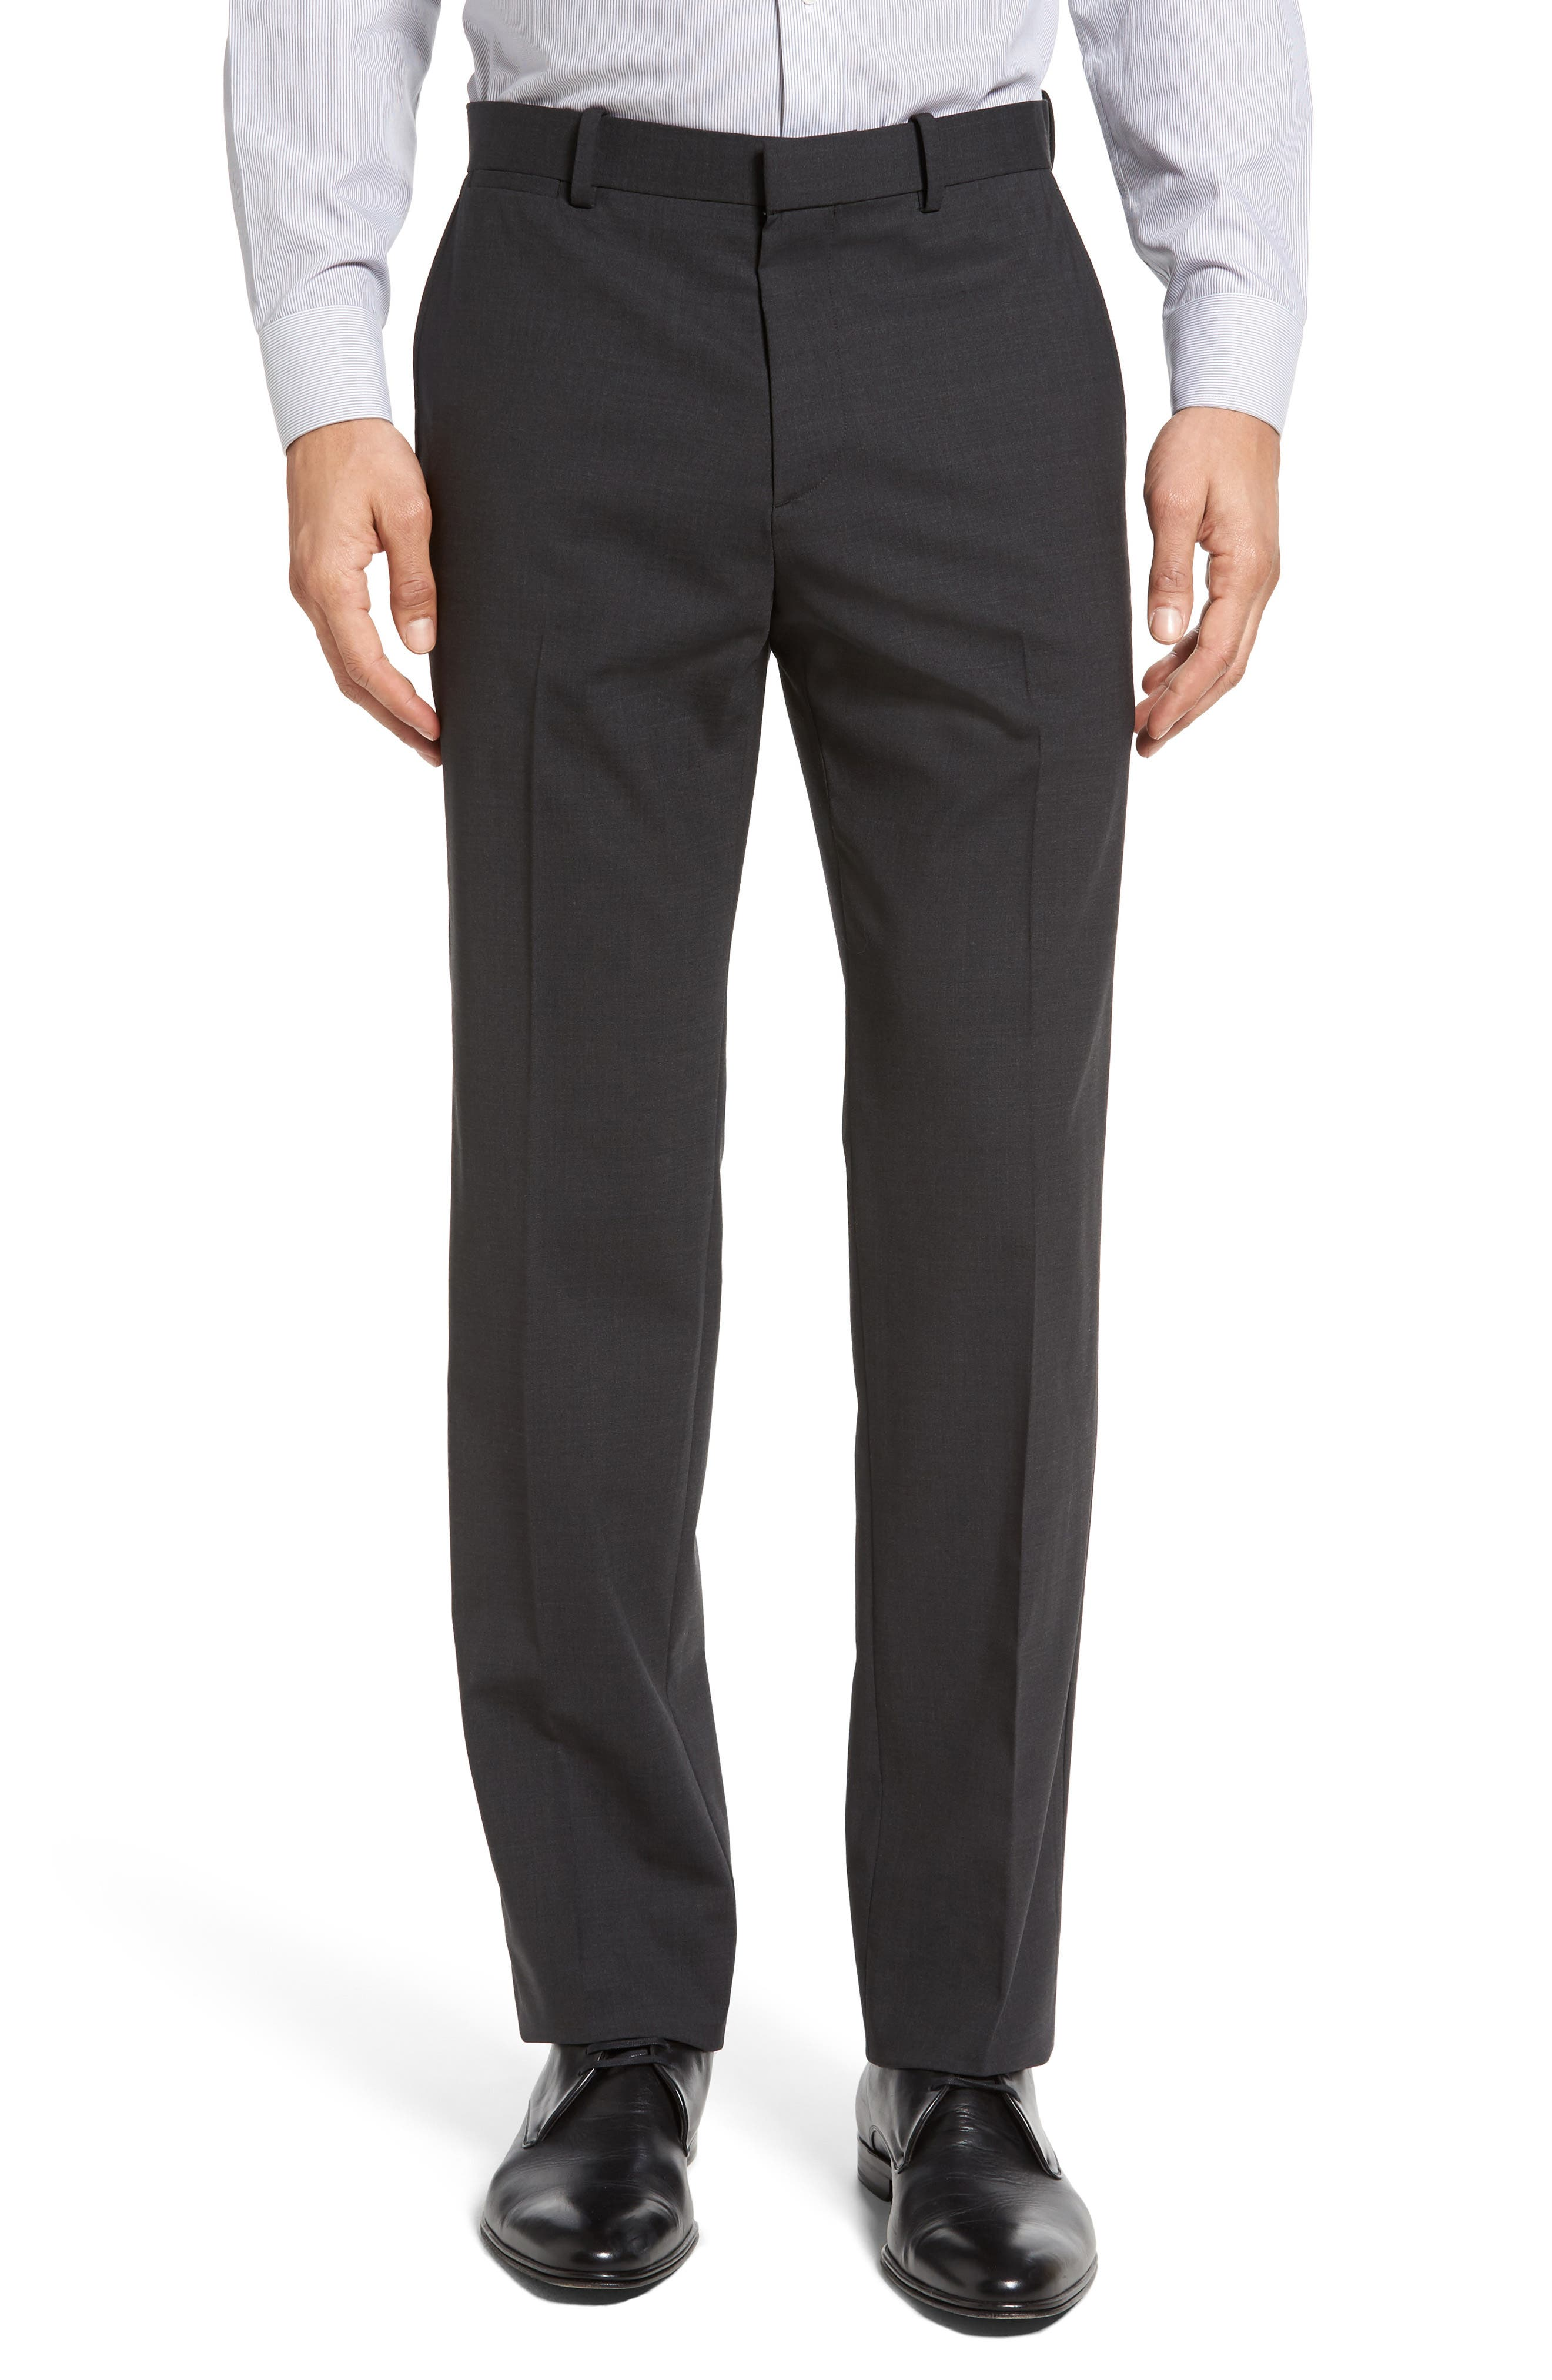 Marlo New Tailor 2 Flat Front Solid Stretch Wool Trousers,                         Main,                         color, 029